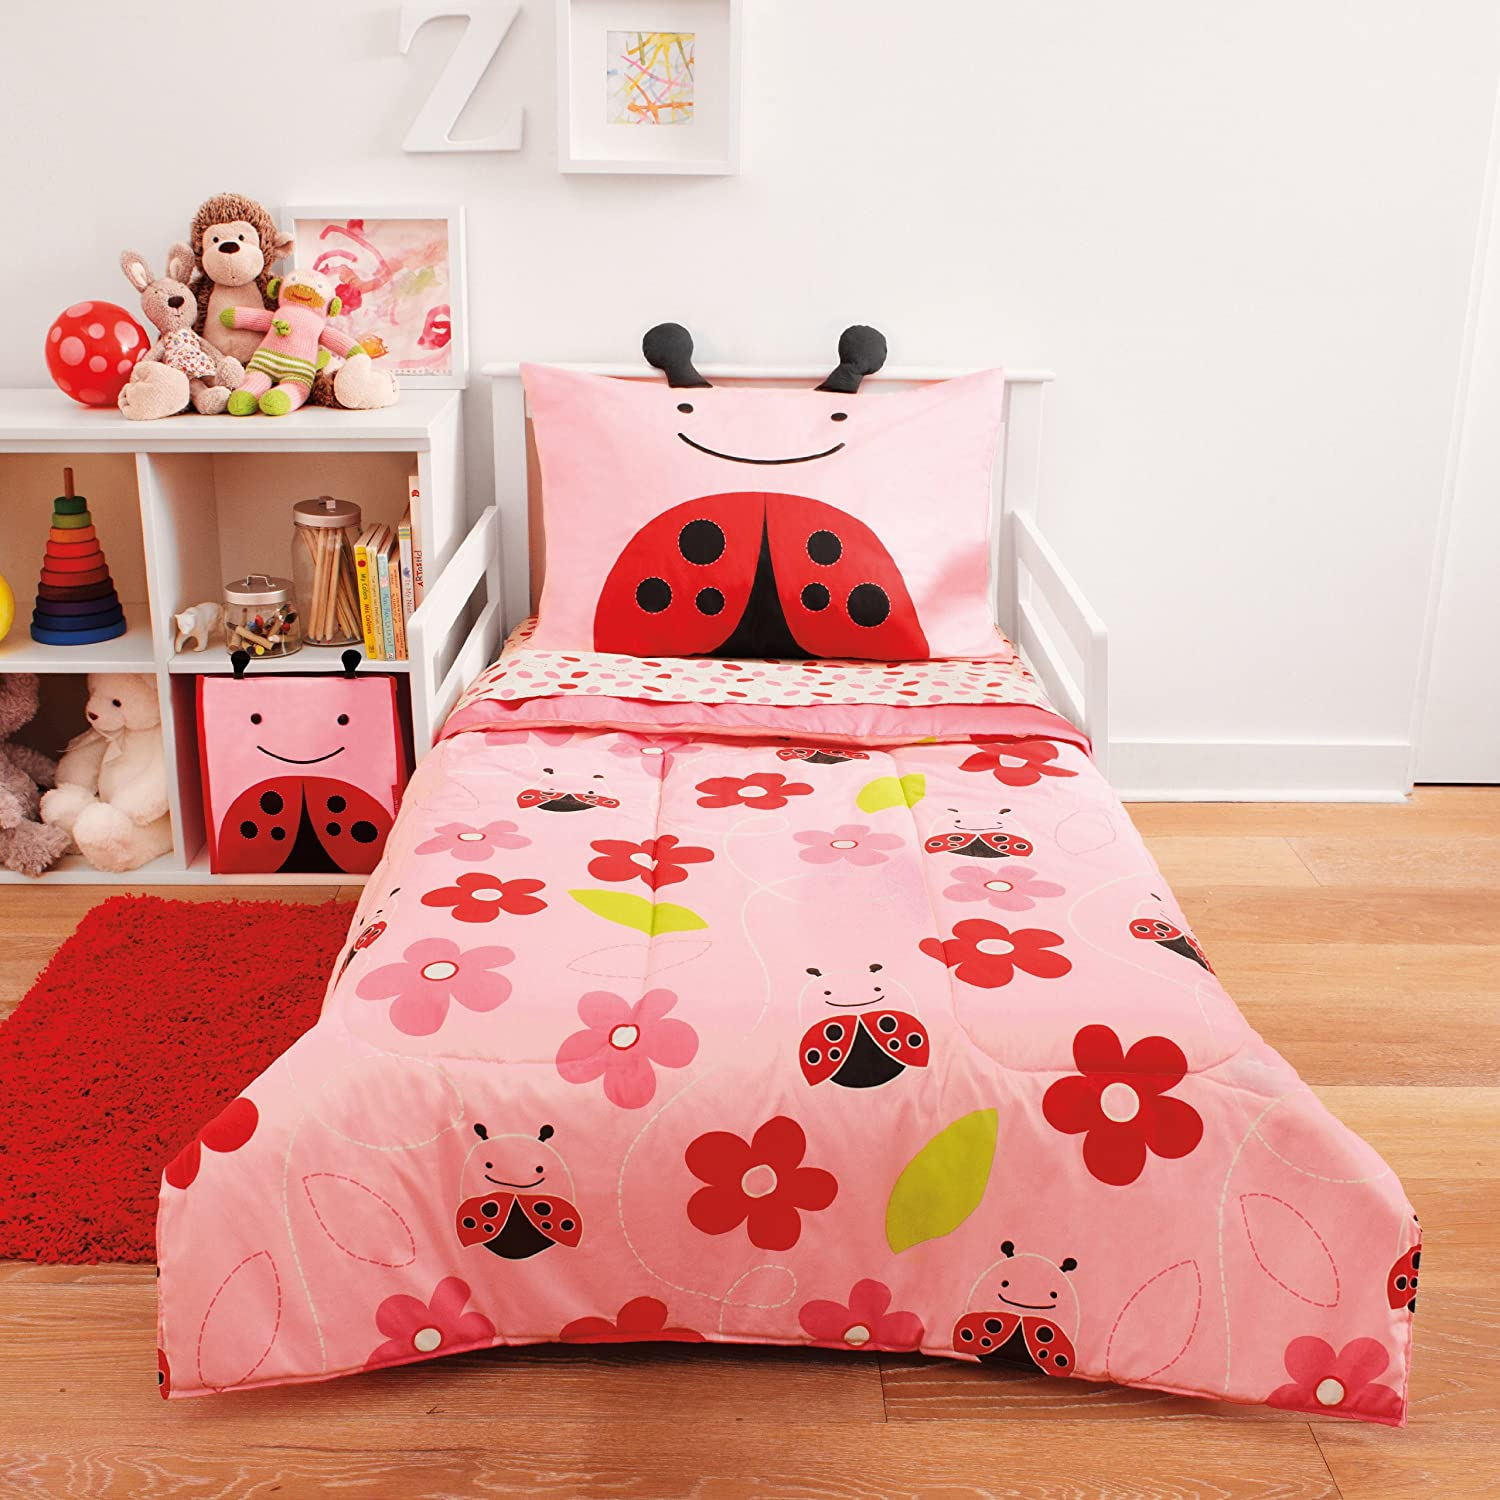 thedigitalhandshake bedding style a furniture of image decorate make girl beds toddler bed